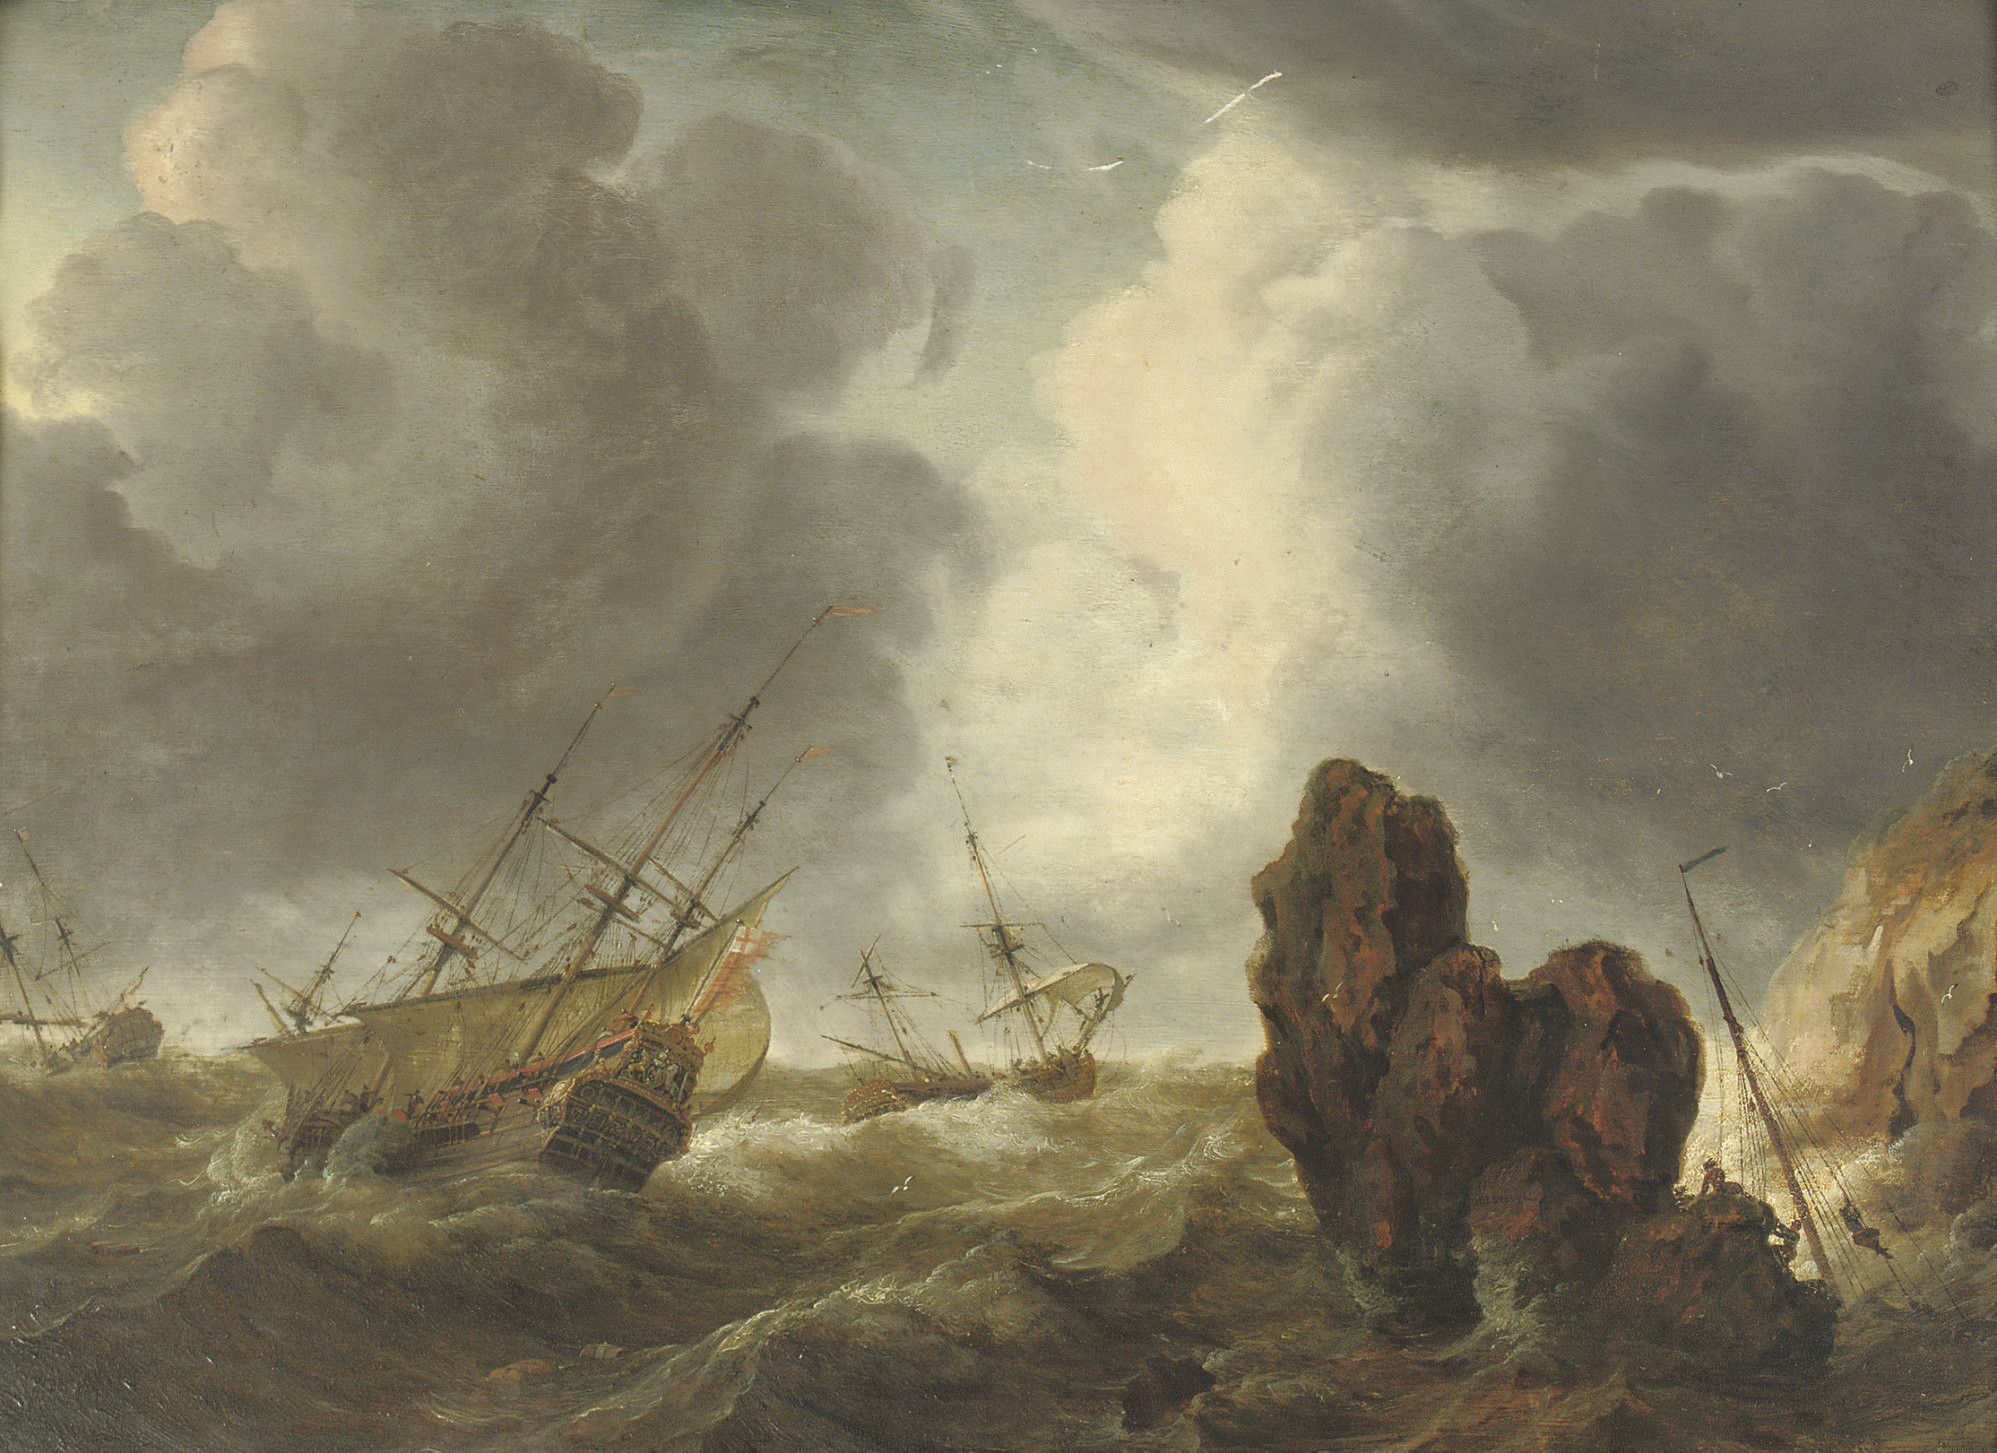 Shipping in stormy waters near a rocky coast